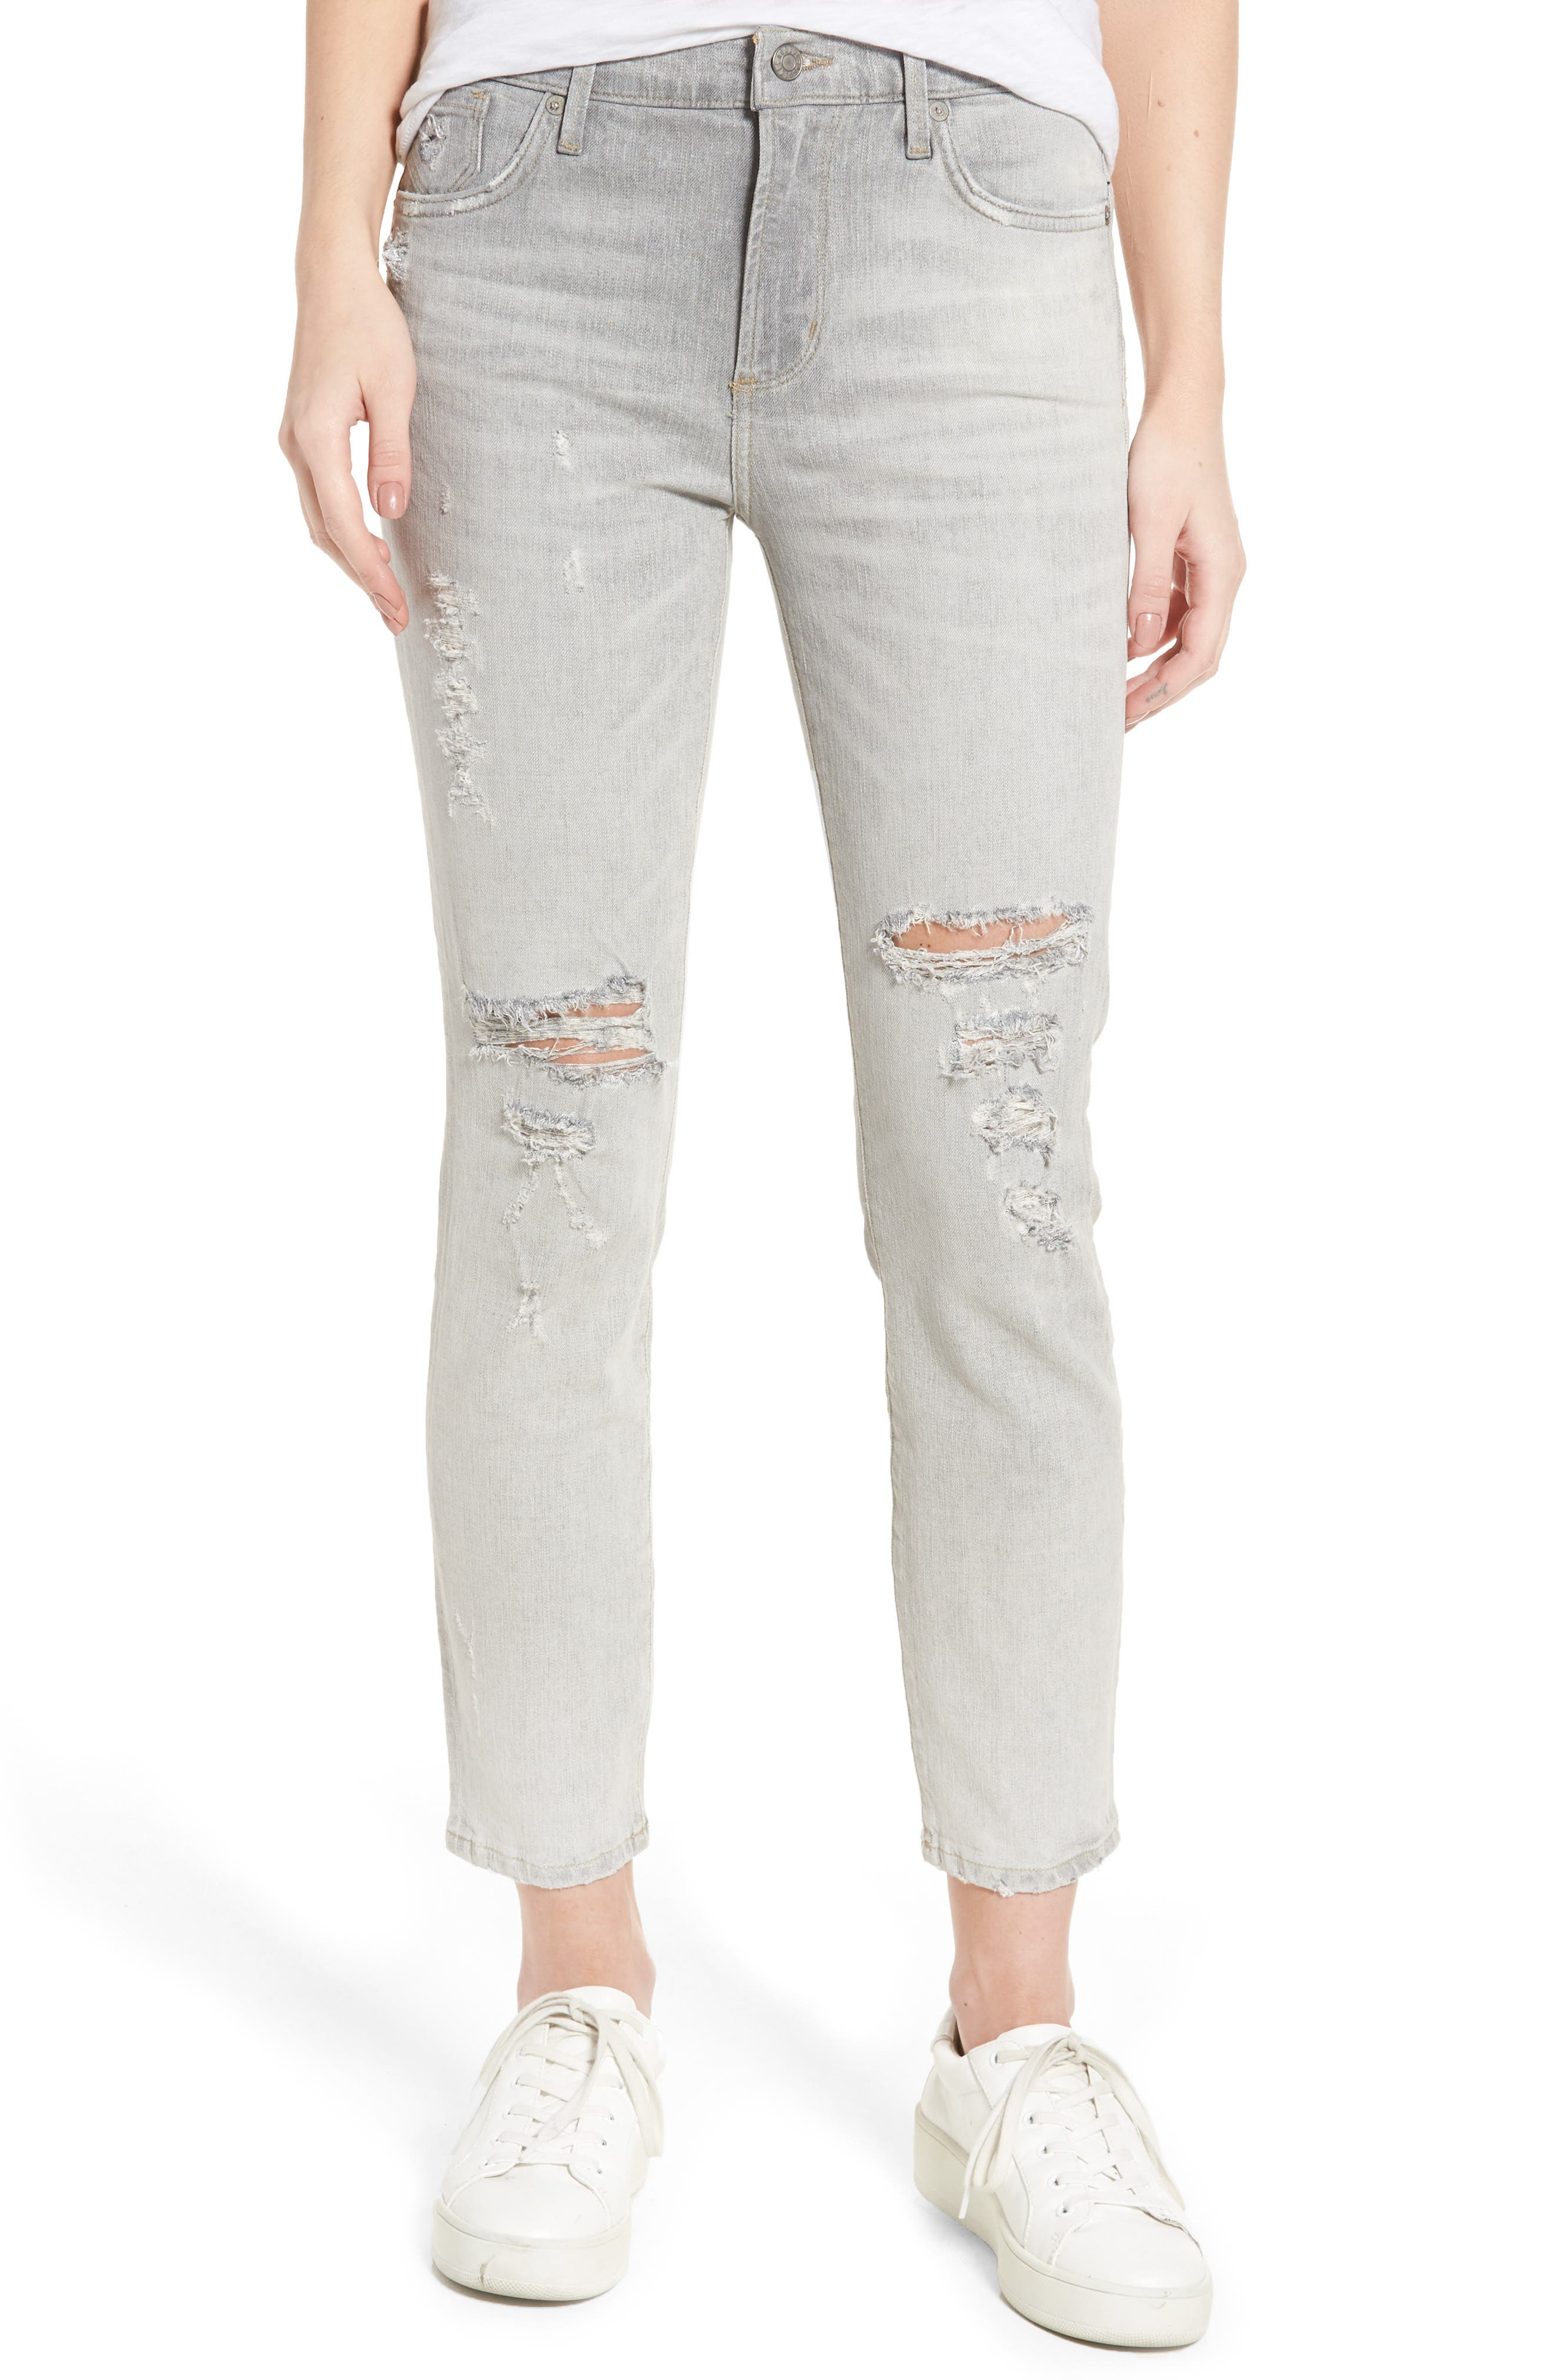 Sophie High Waist Skinny Jeans,                             Main thumbnail 1, color,                             059